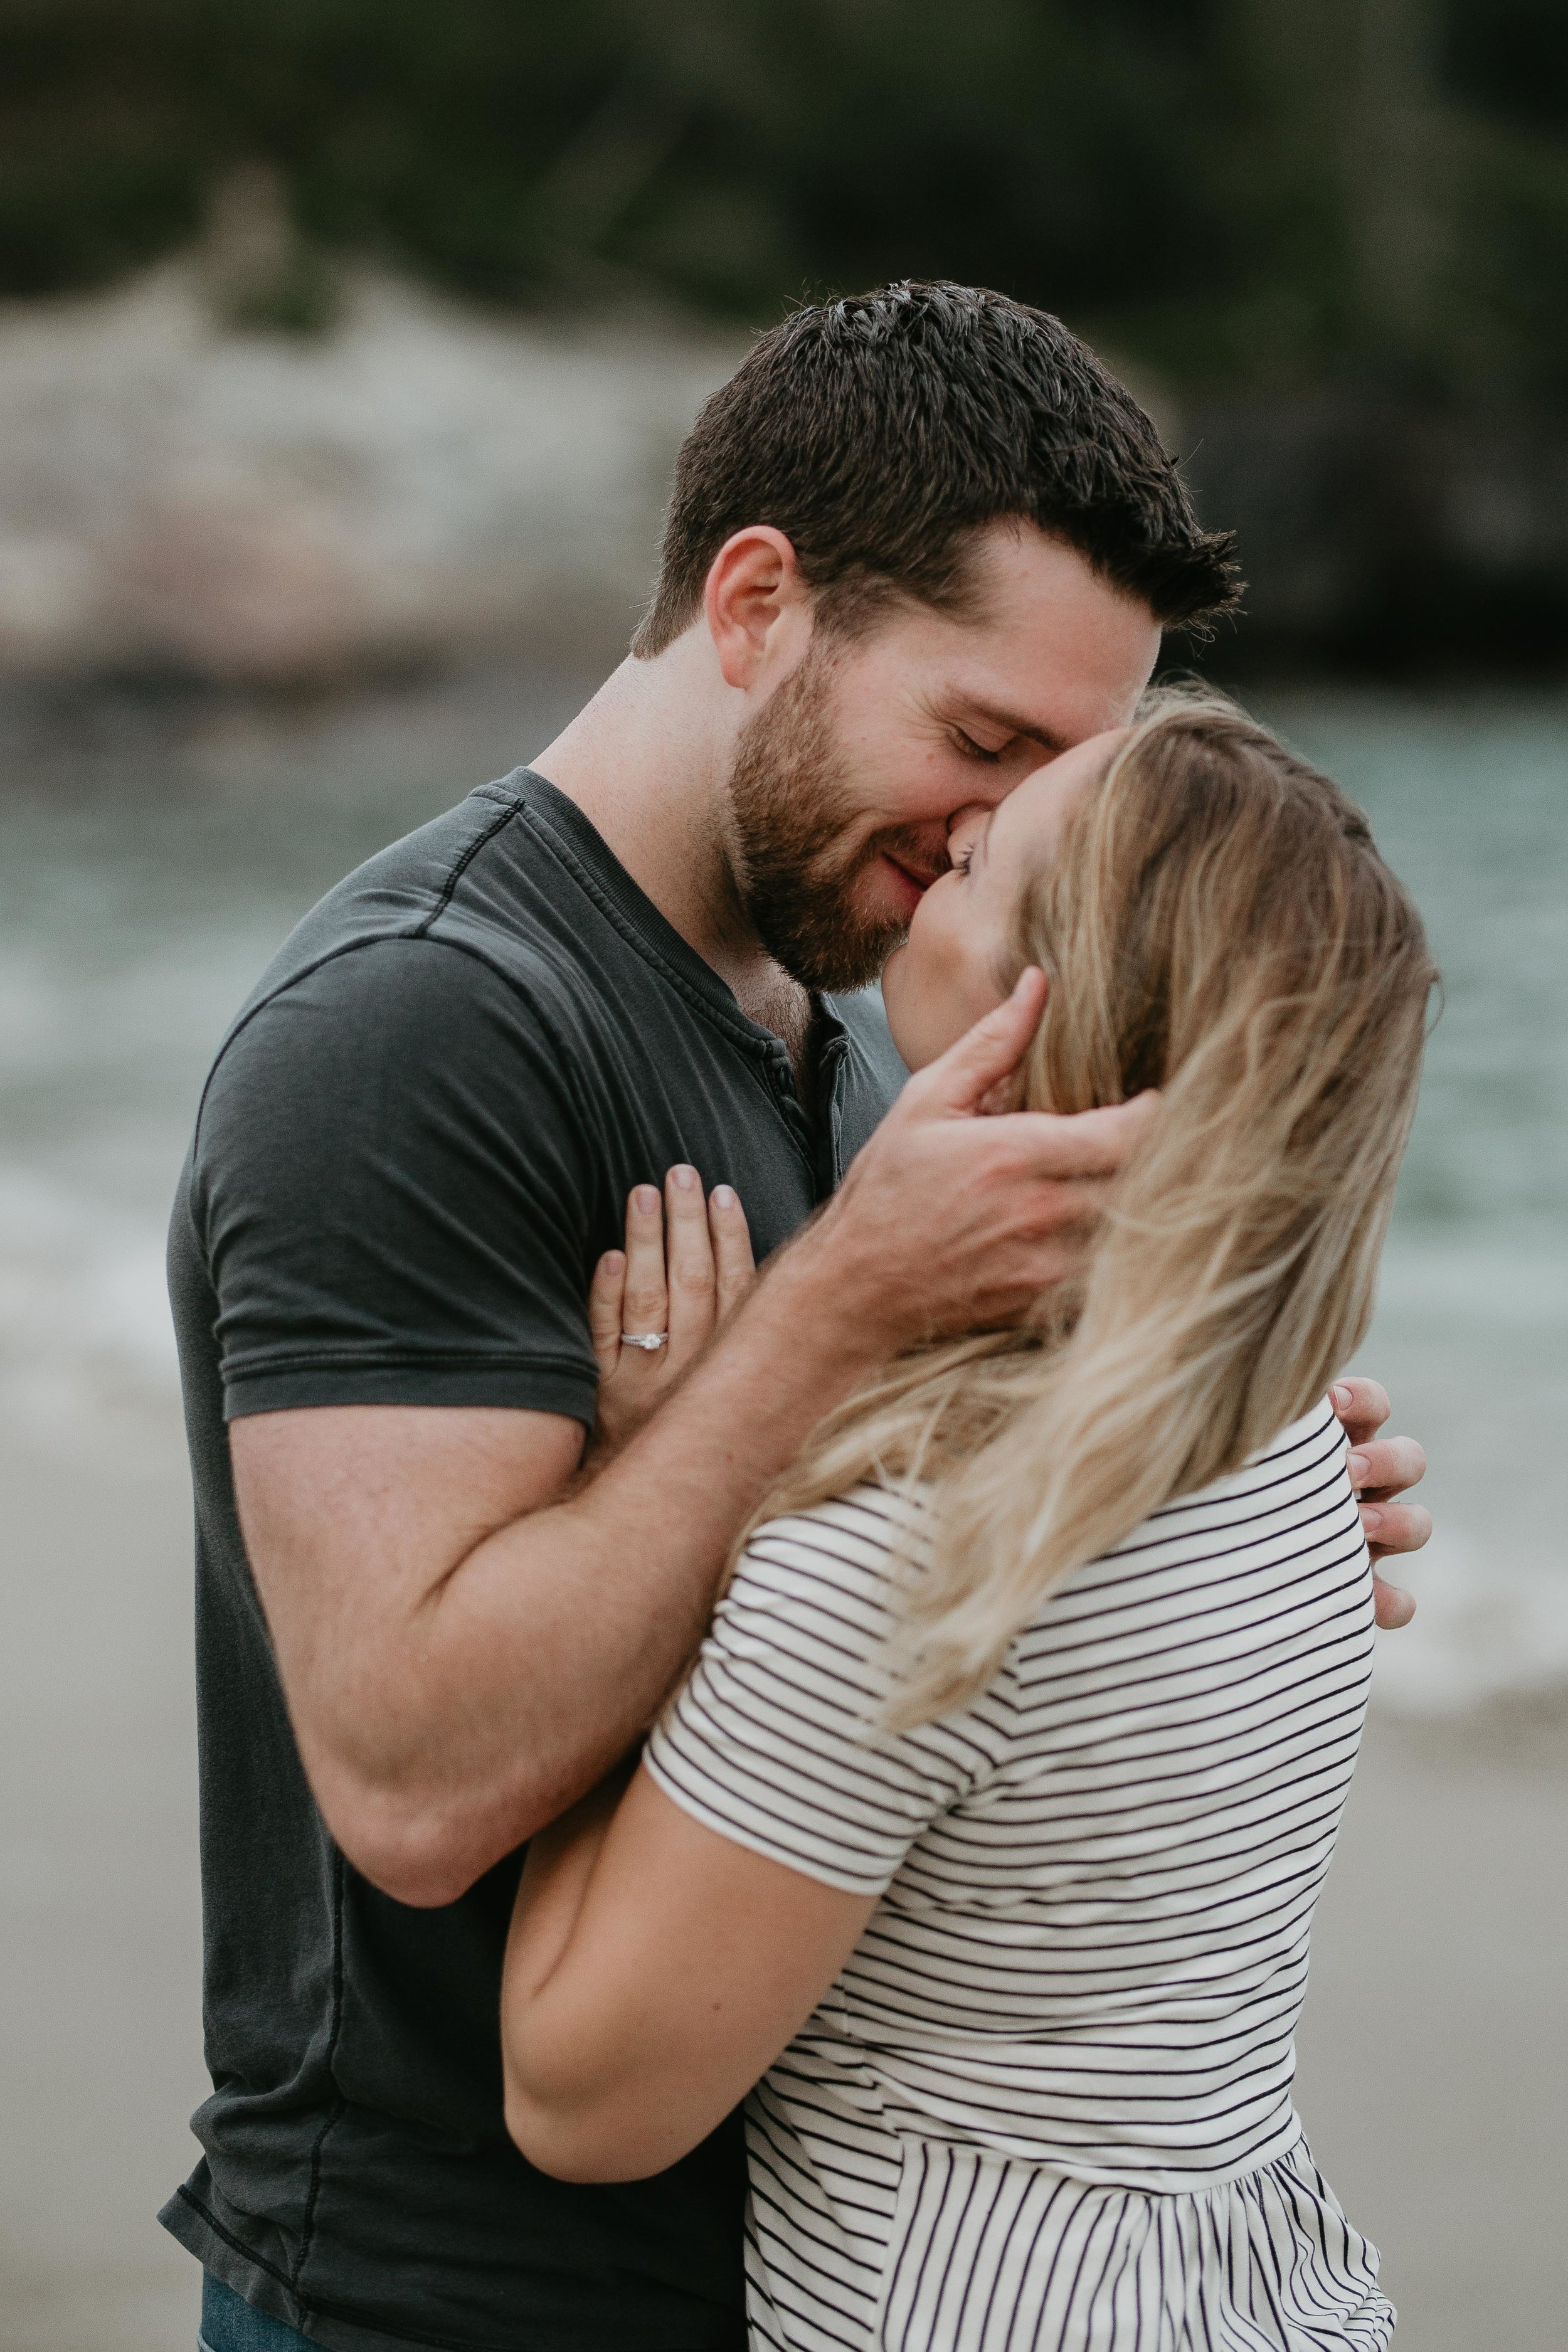 nicole-daacke-photography-acadia-national-park-adventurous-engagement-session-photos-otter-cliffs-forests-coastline-sand-beach-adventure-session-bar-harbor-mt-desert-island-elopement-fall-bass-harbor-lighthouse-wedding-maine-landscape-photographer-6.jpg